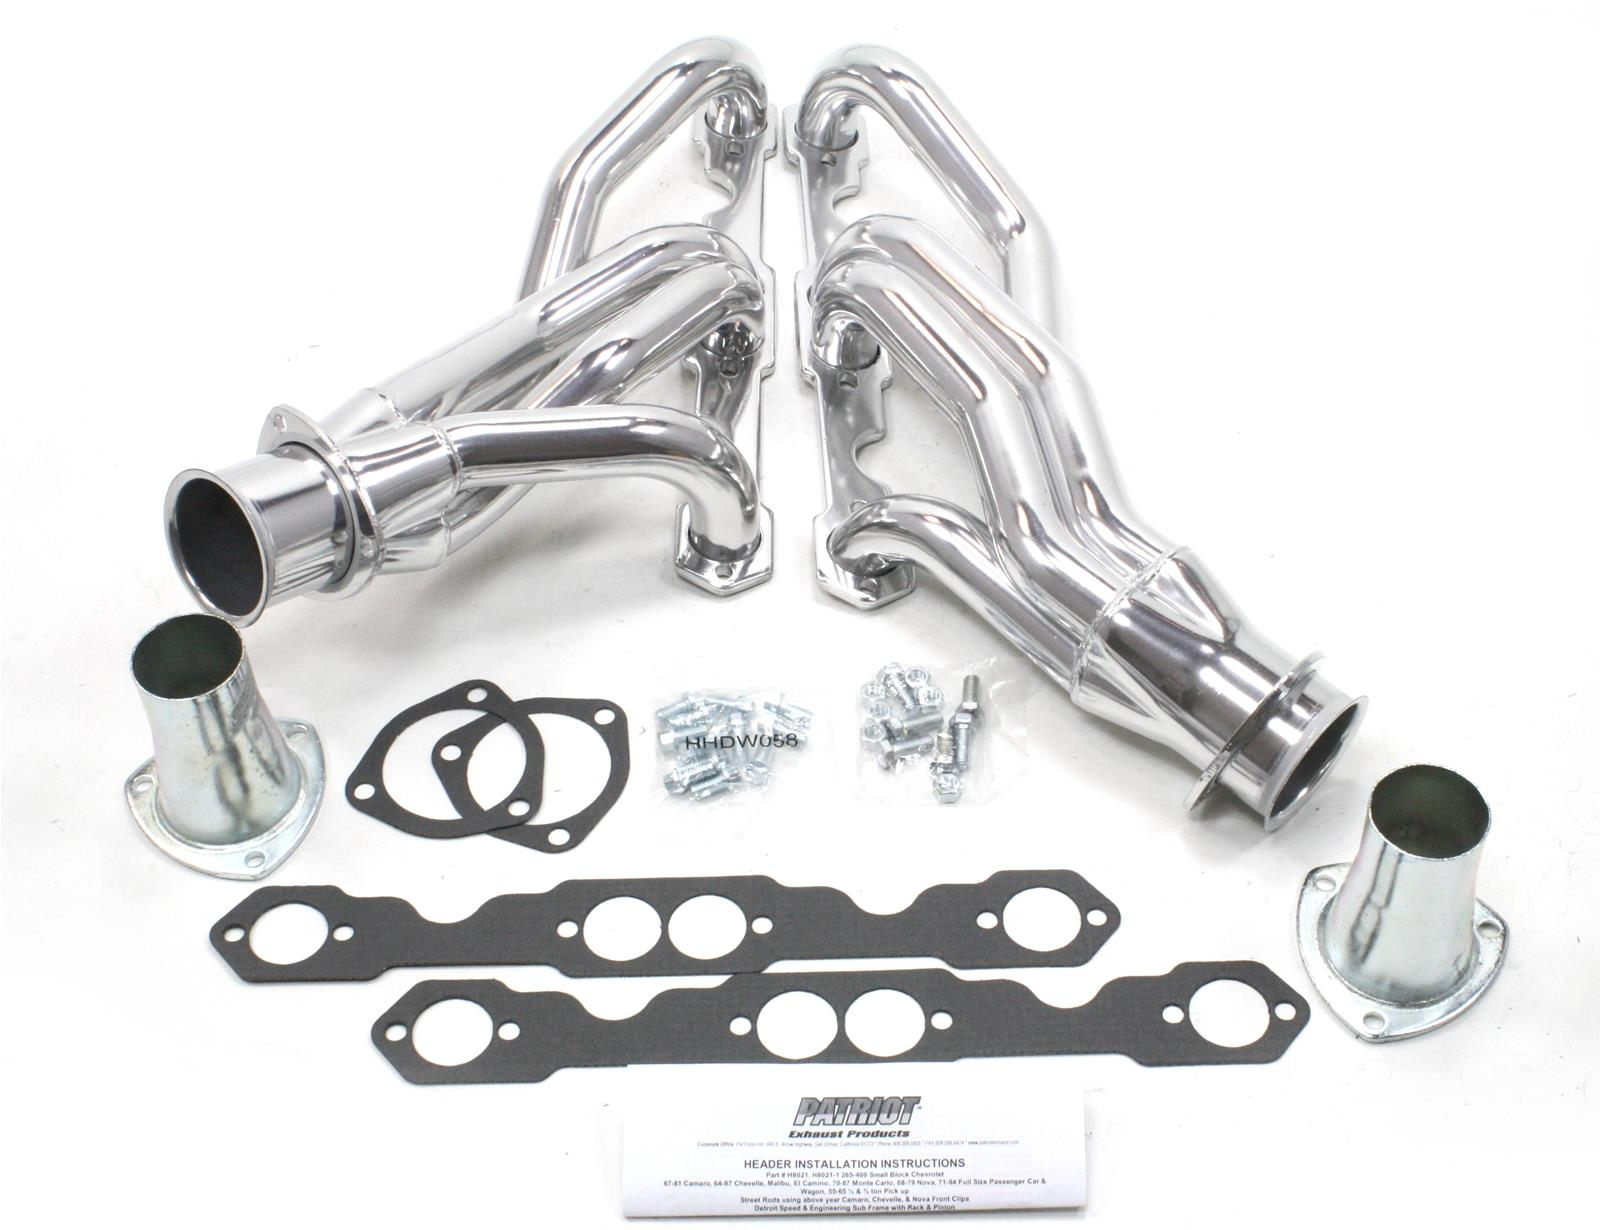 Patriot Clippster Headers H8021-1 - Free Shipping on Orders Over $99 at  Summit Racing